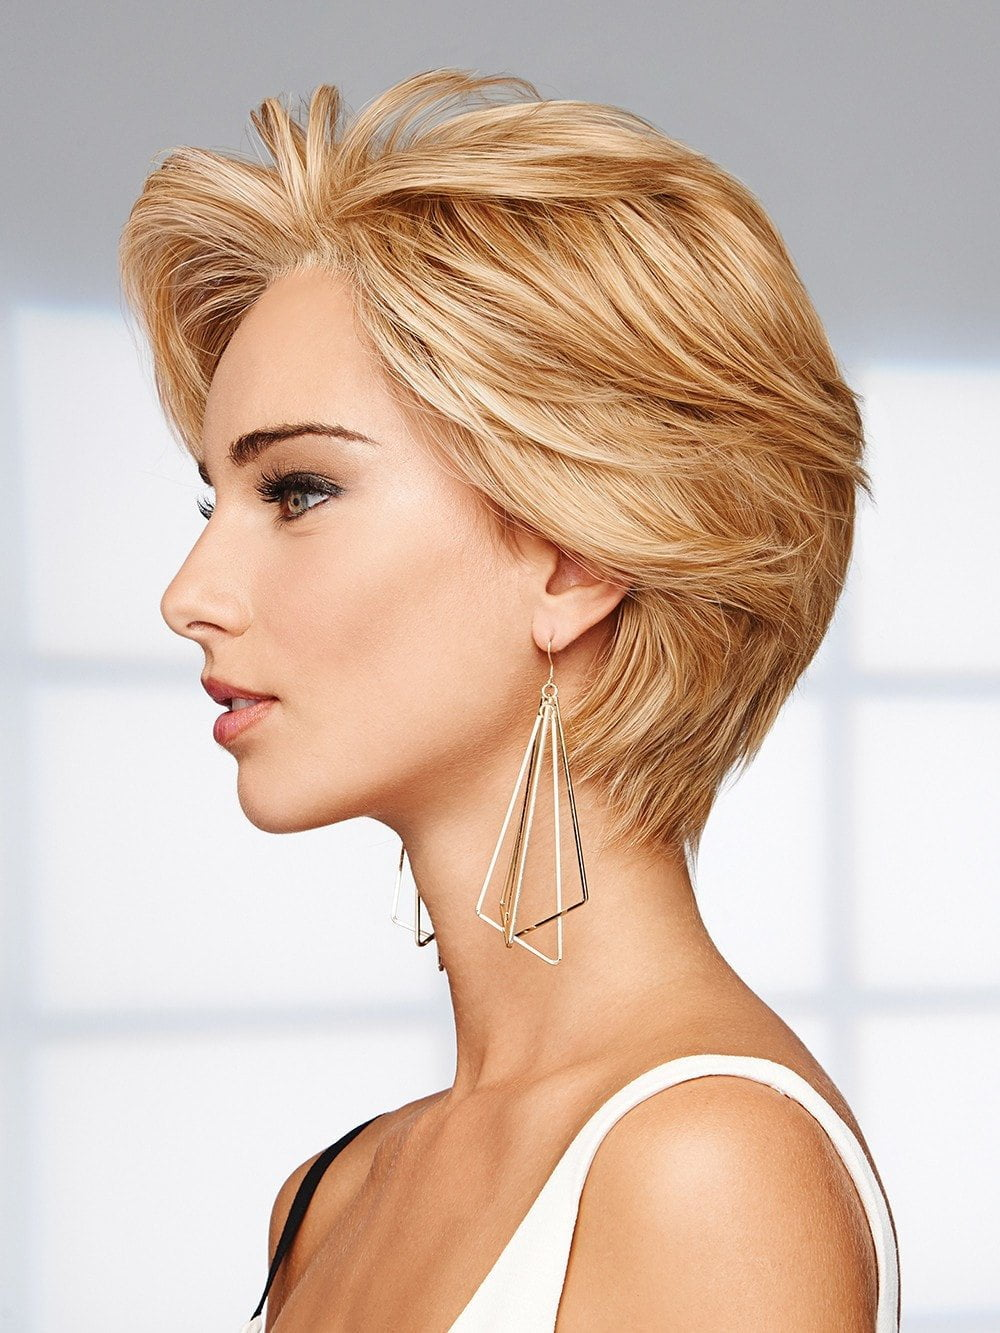 Styled like a pixie or short fun bob, 100% Human Hair